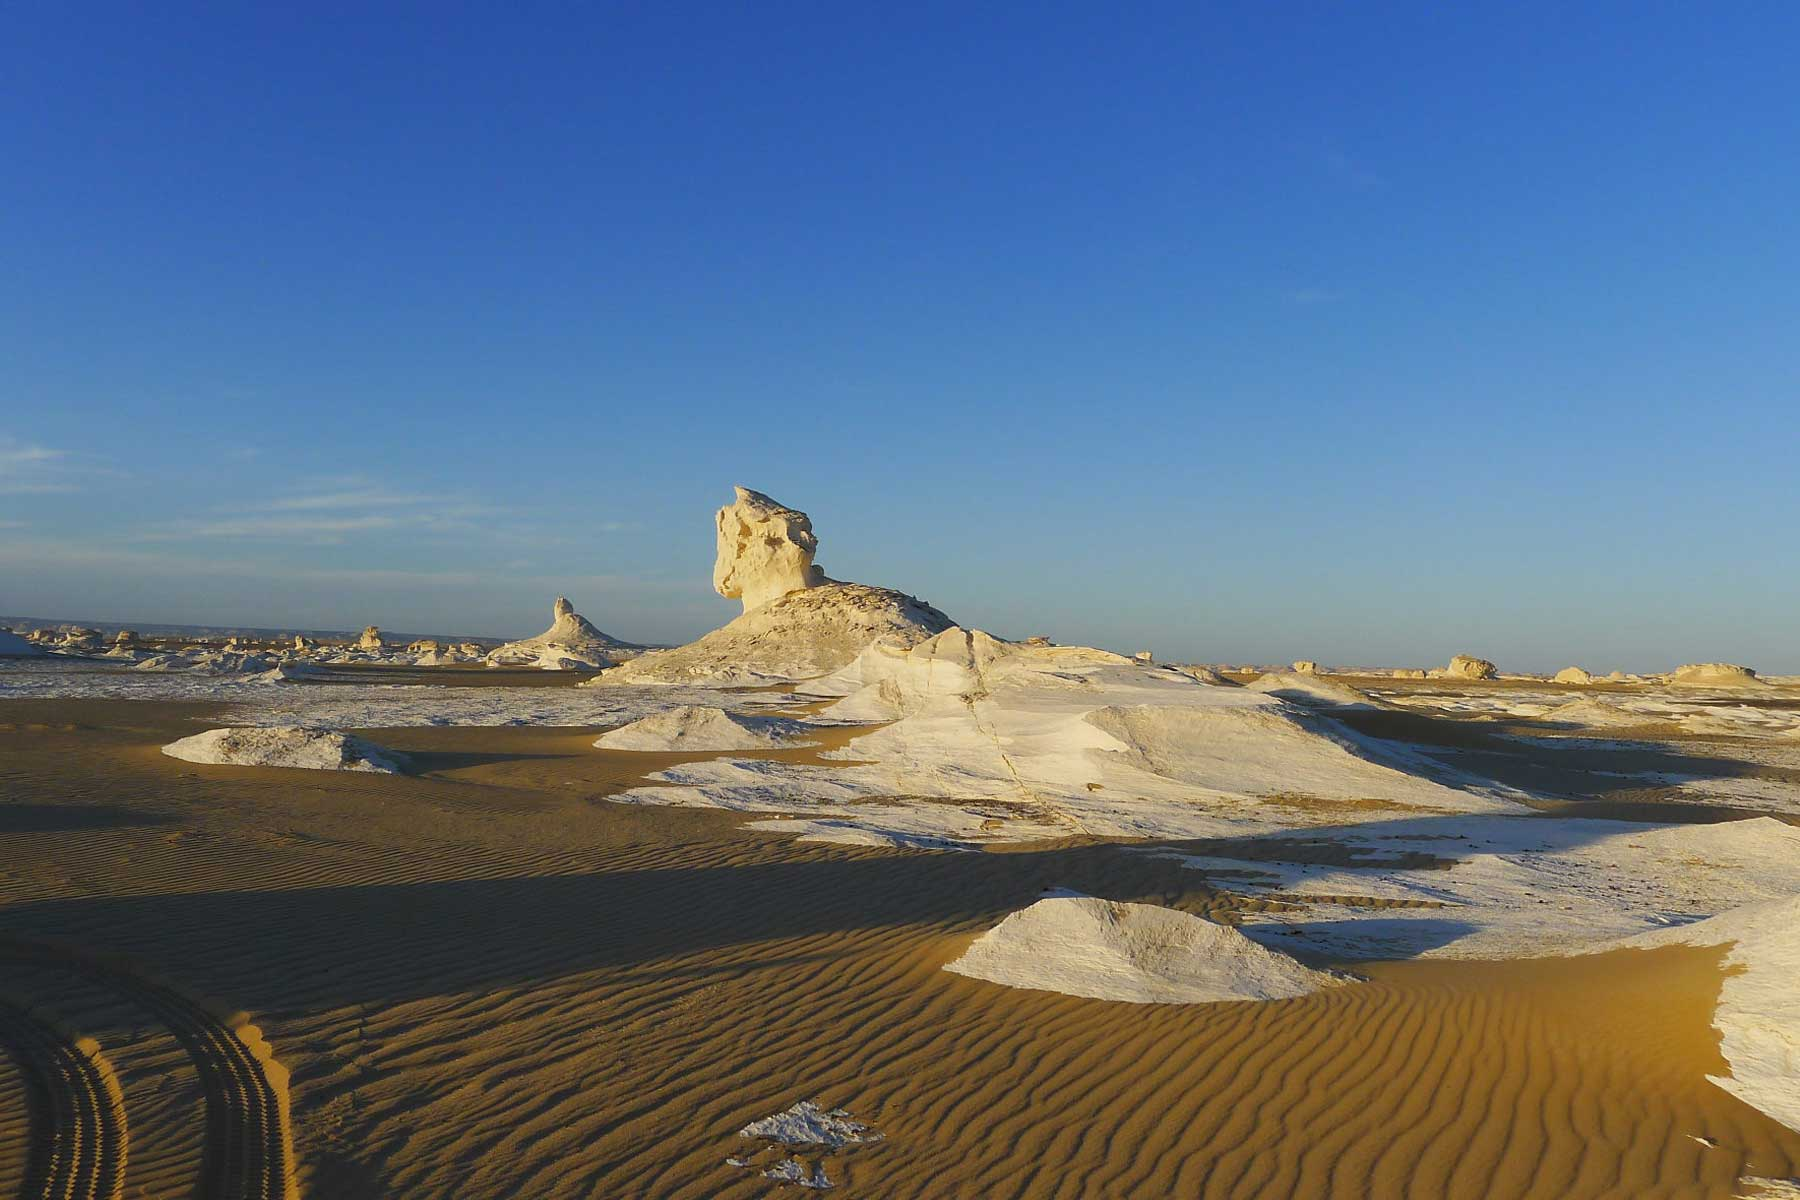 Bahariya oasis in Egypt